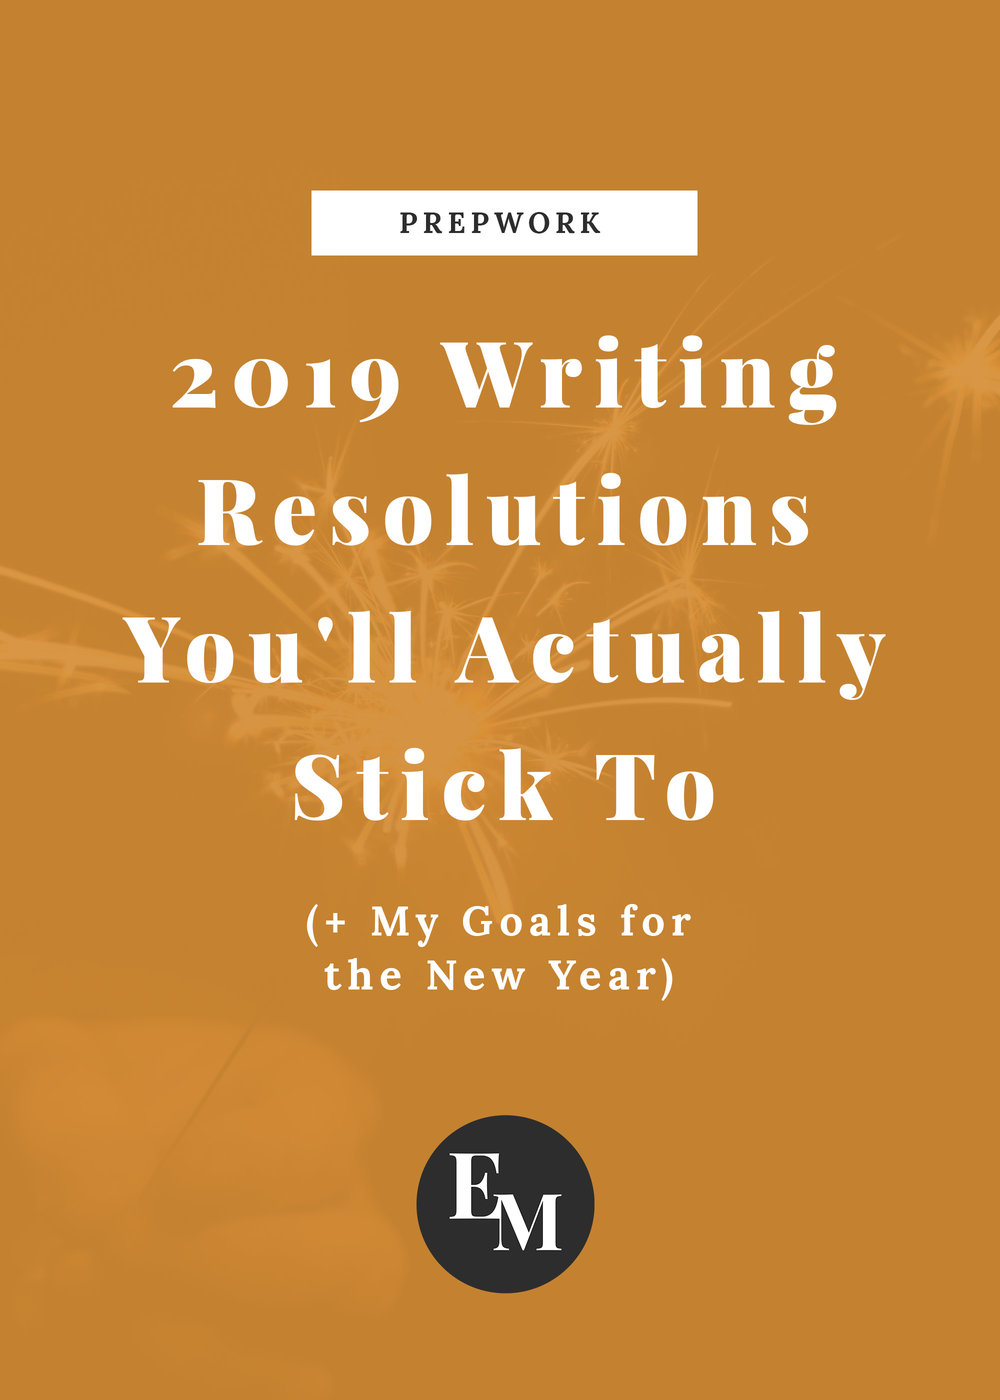 2019-writing-resolutions.jpg